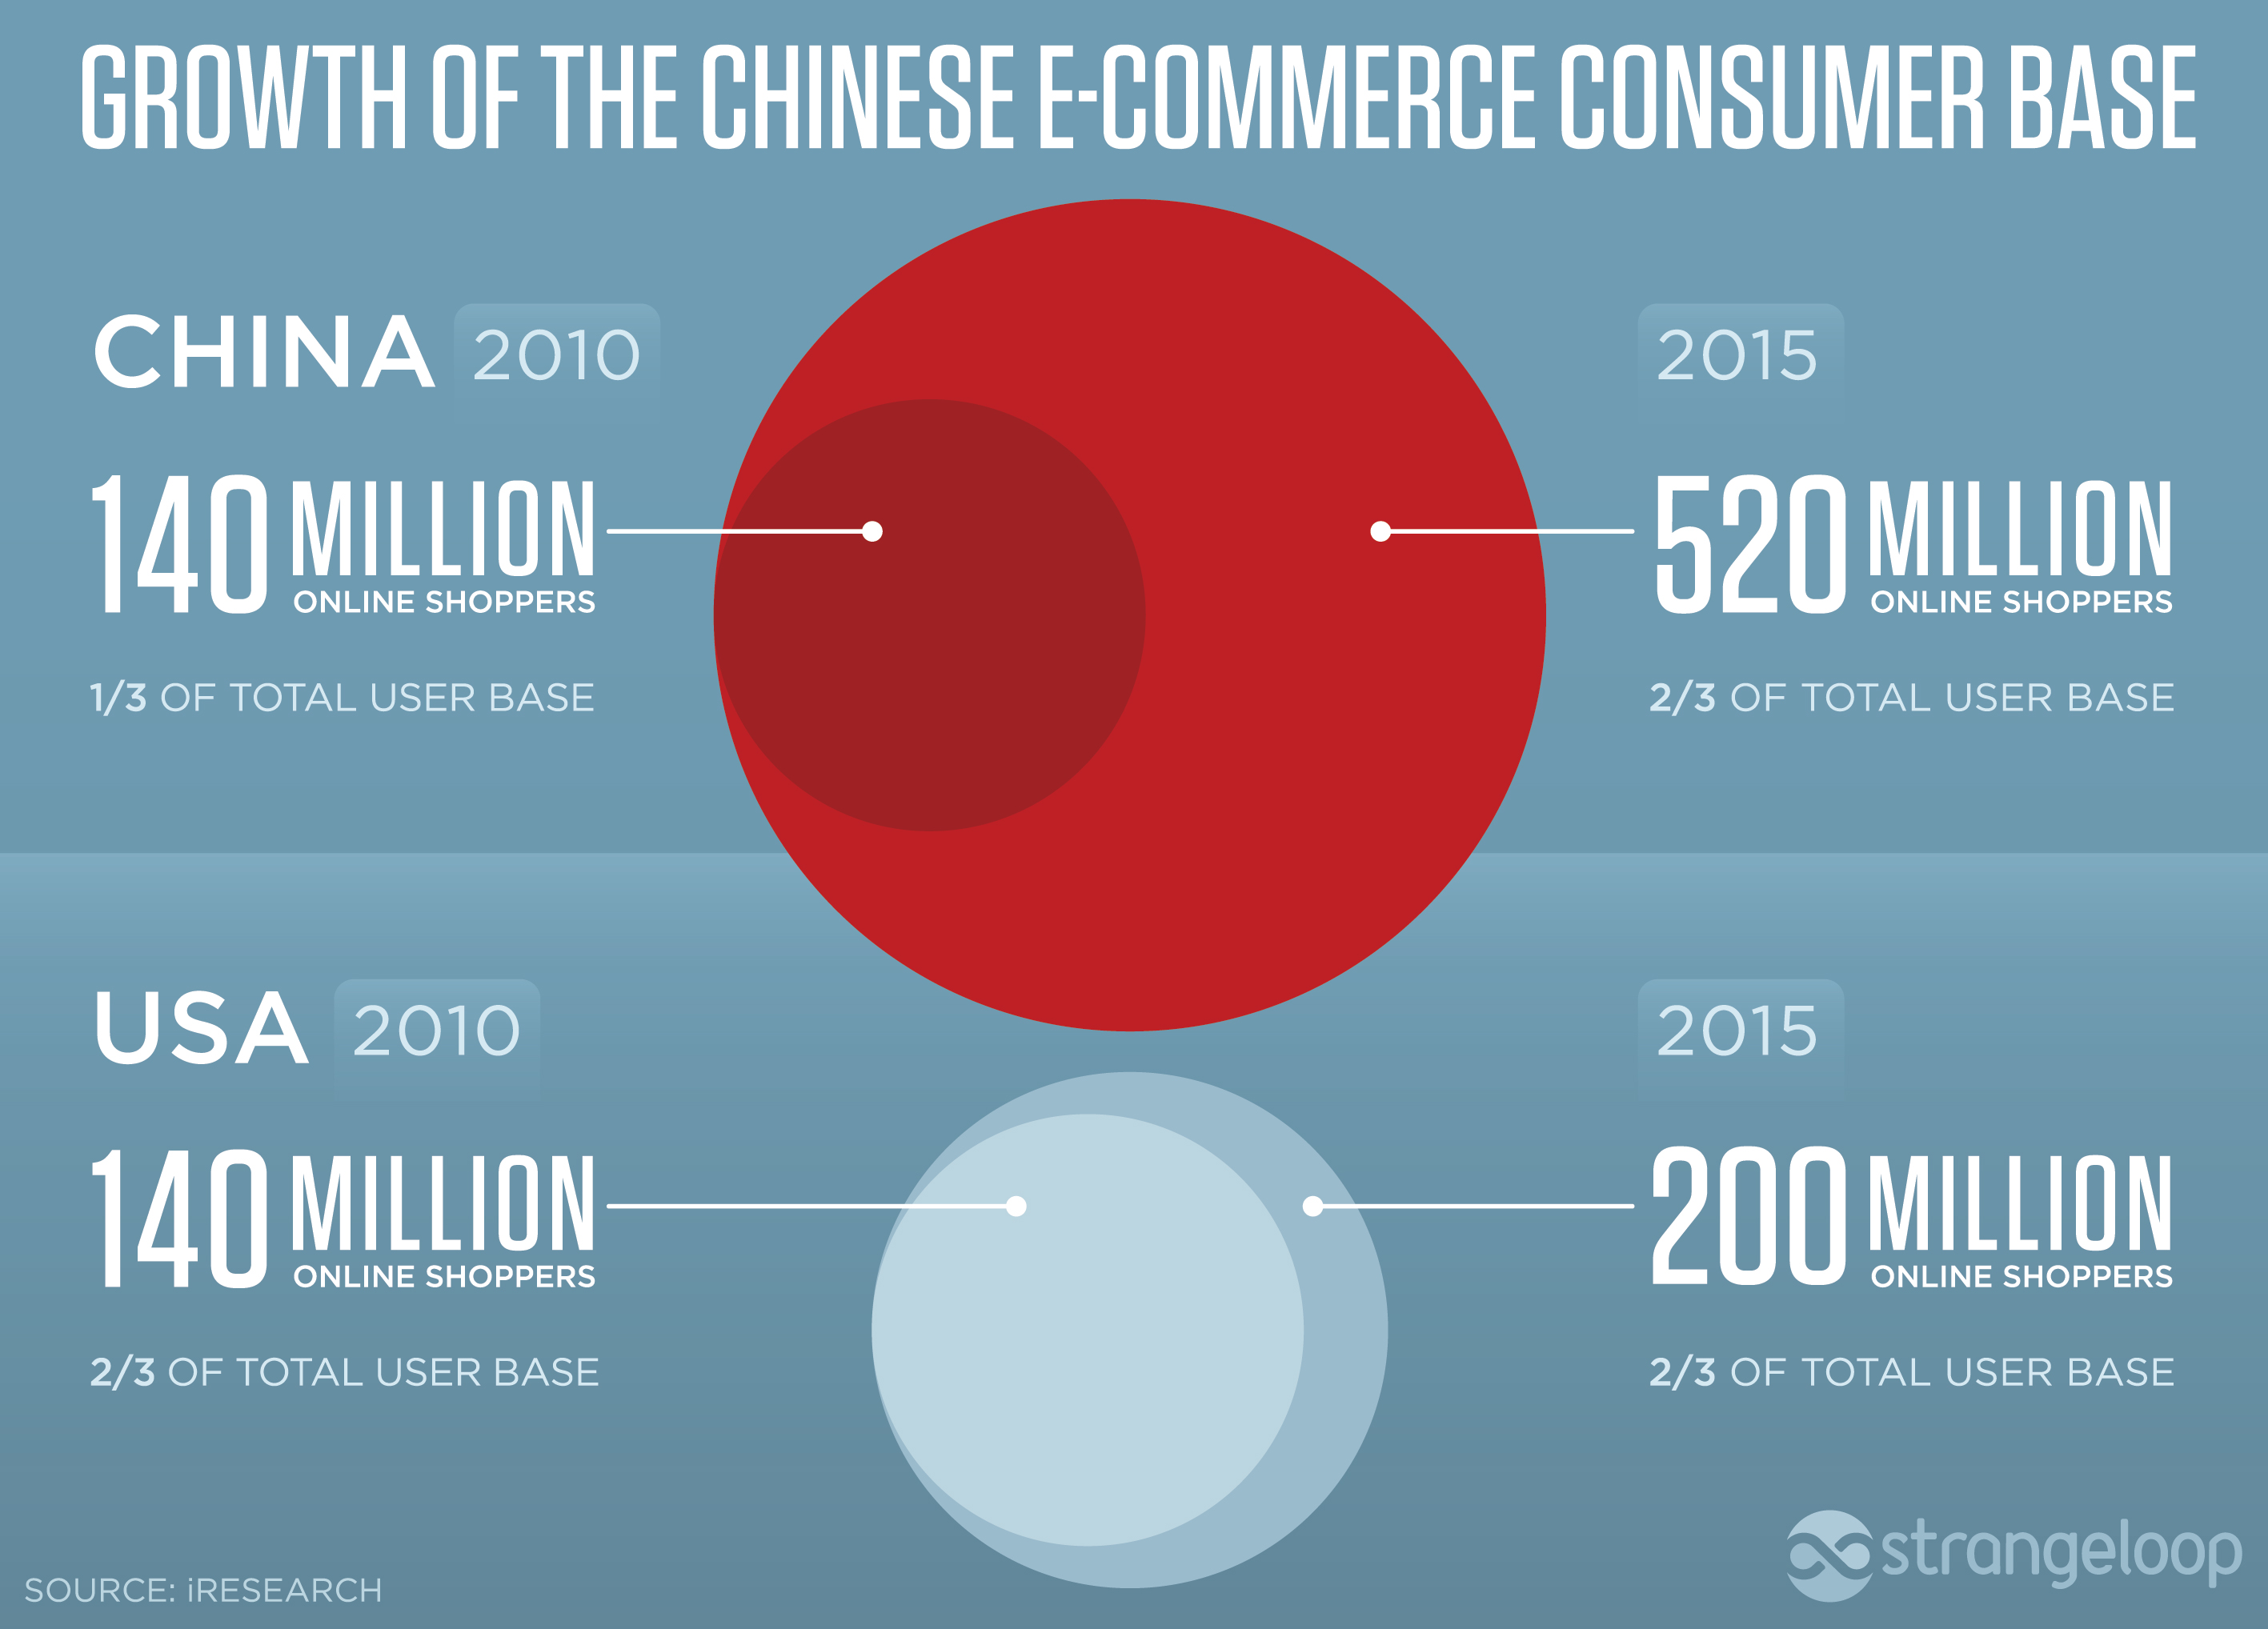 10 key factors of success for E-Commerce in China